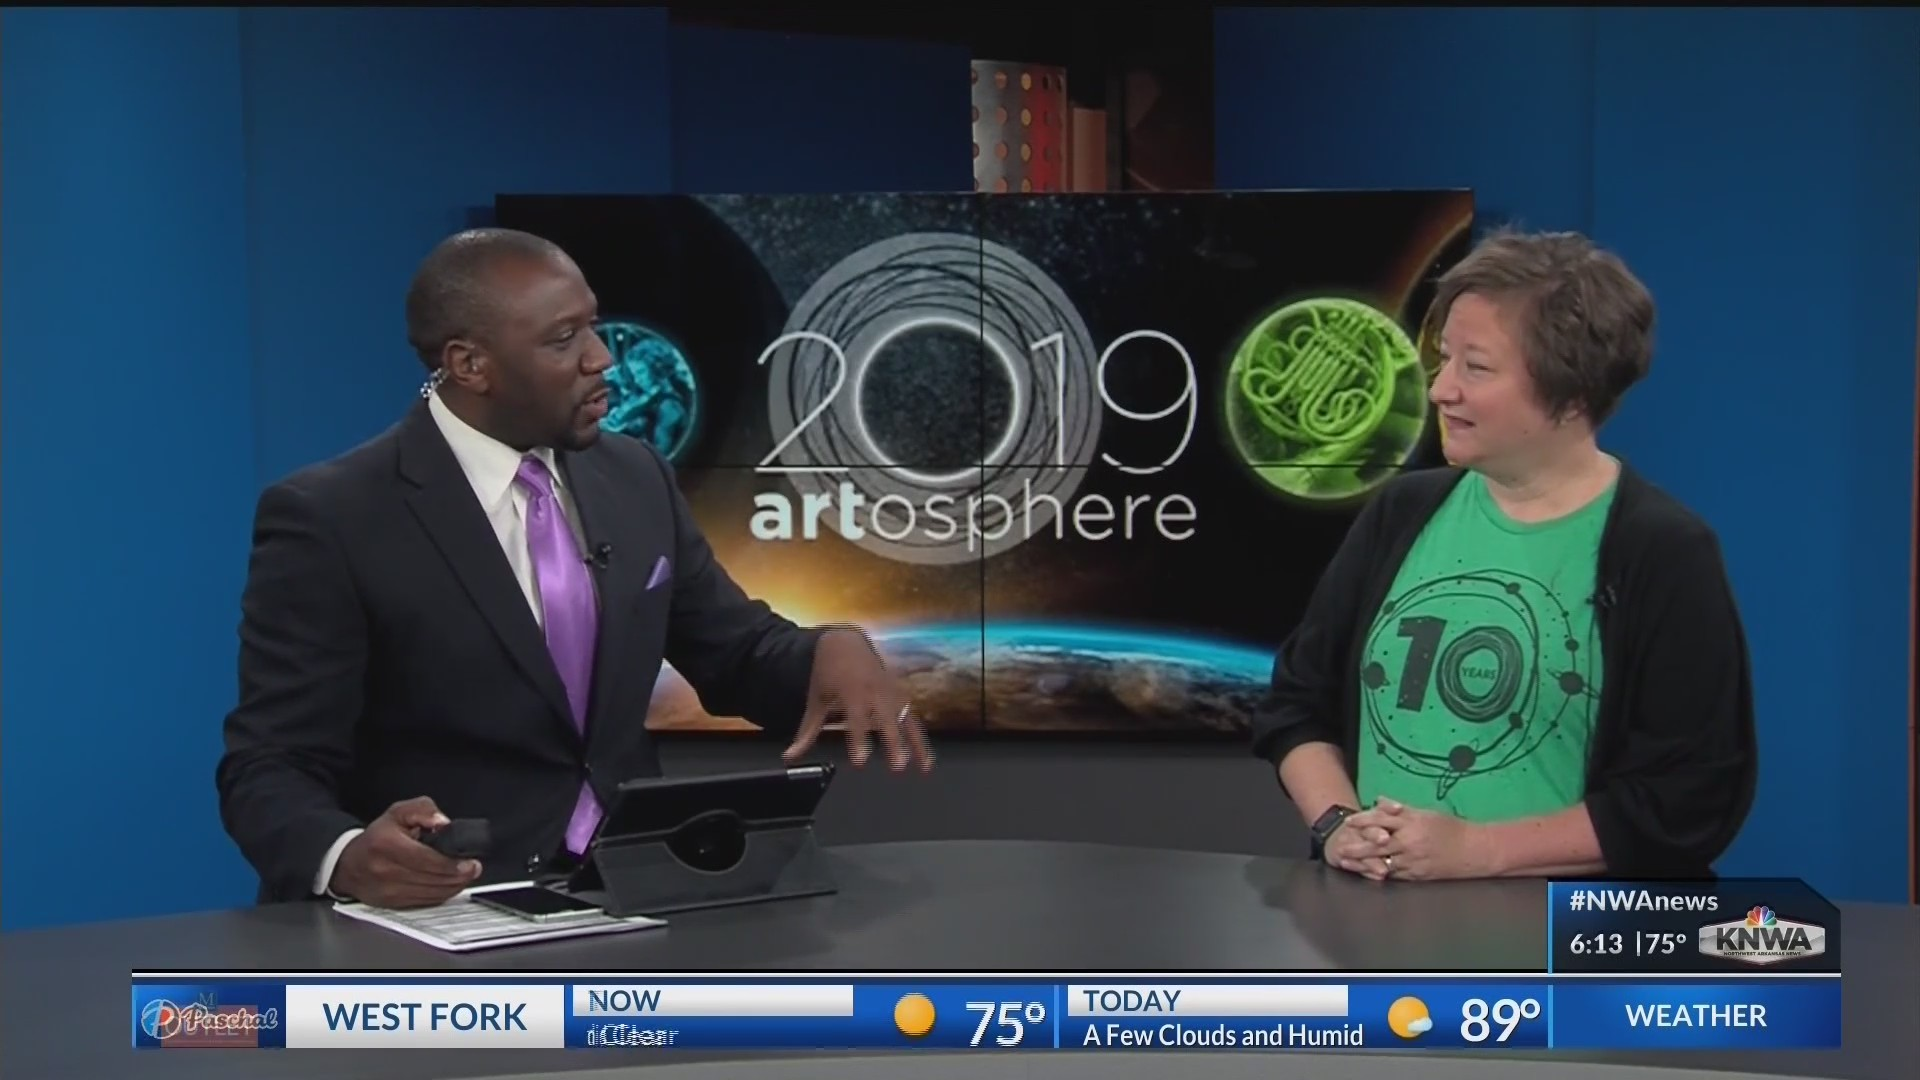 KNWA_Today__2019_Artosphere_at_Walton_Ar_0_20190621112155